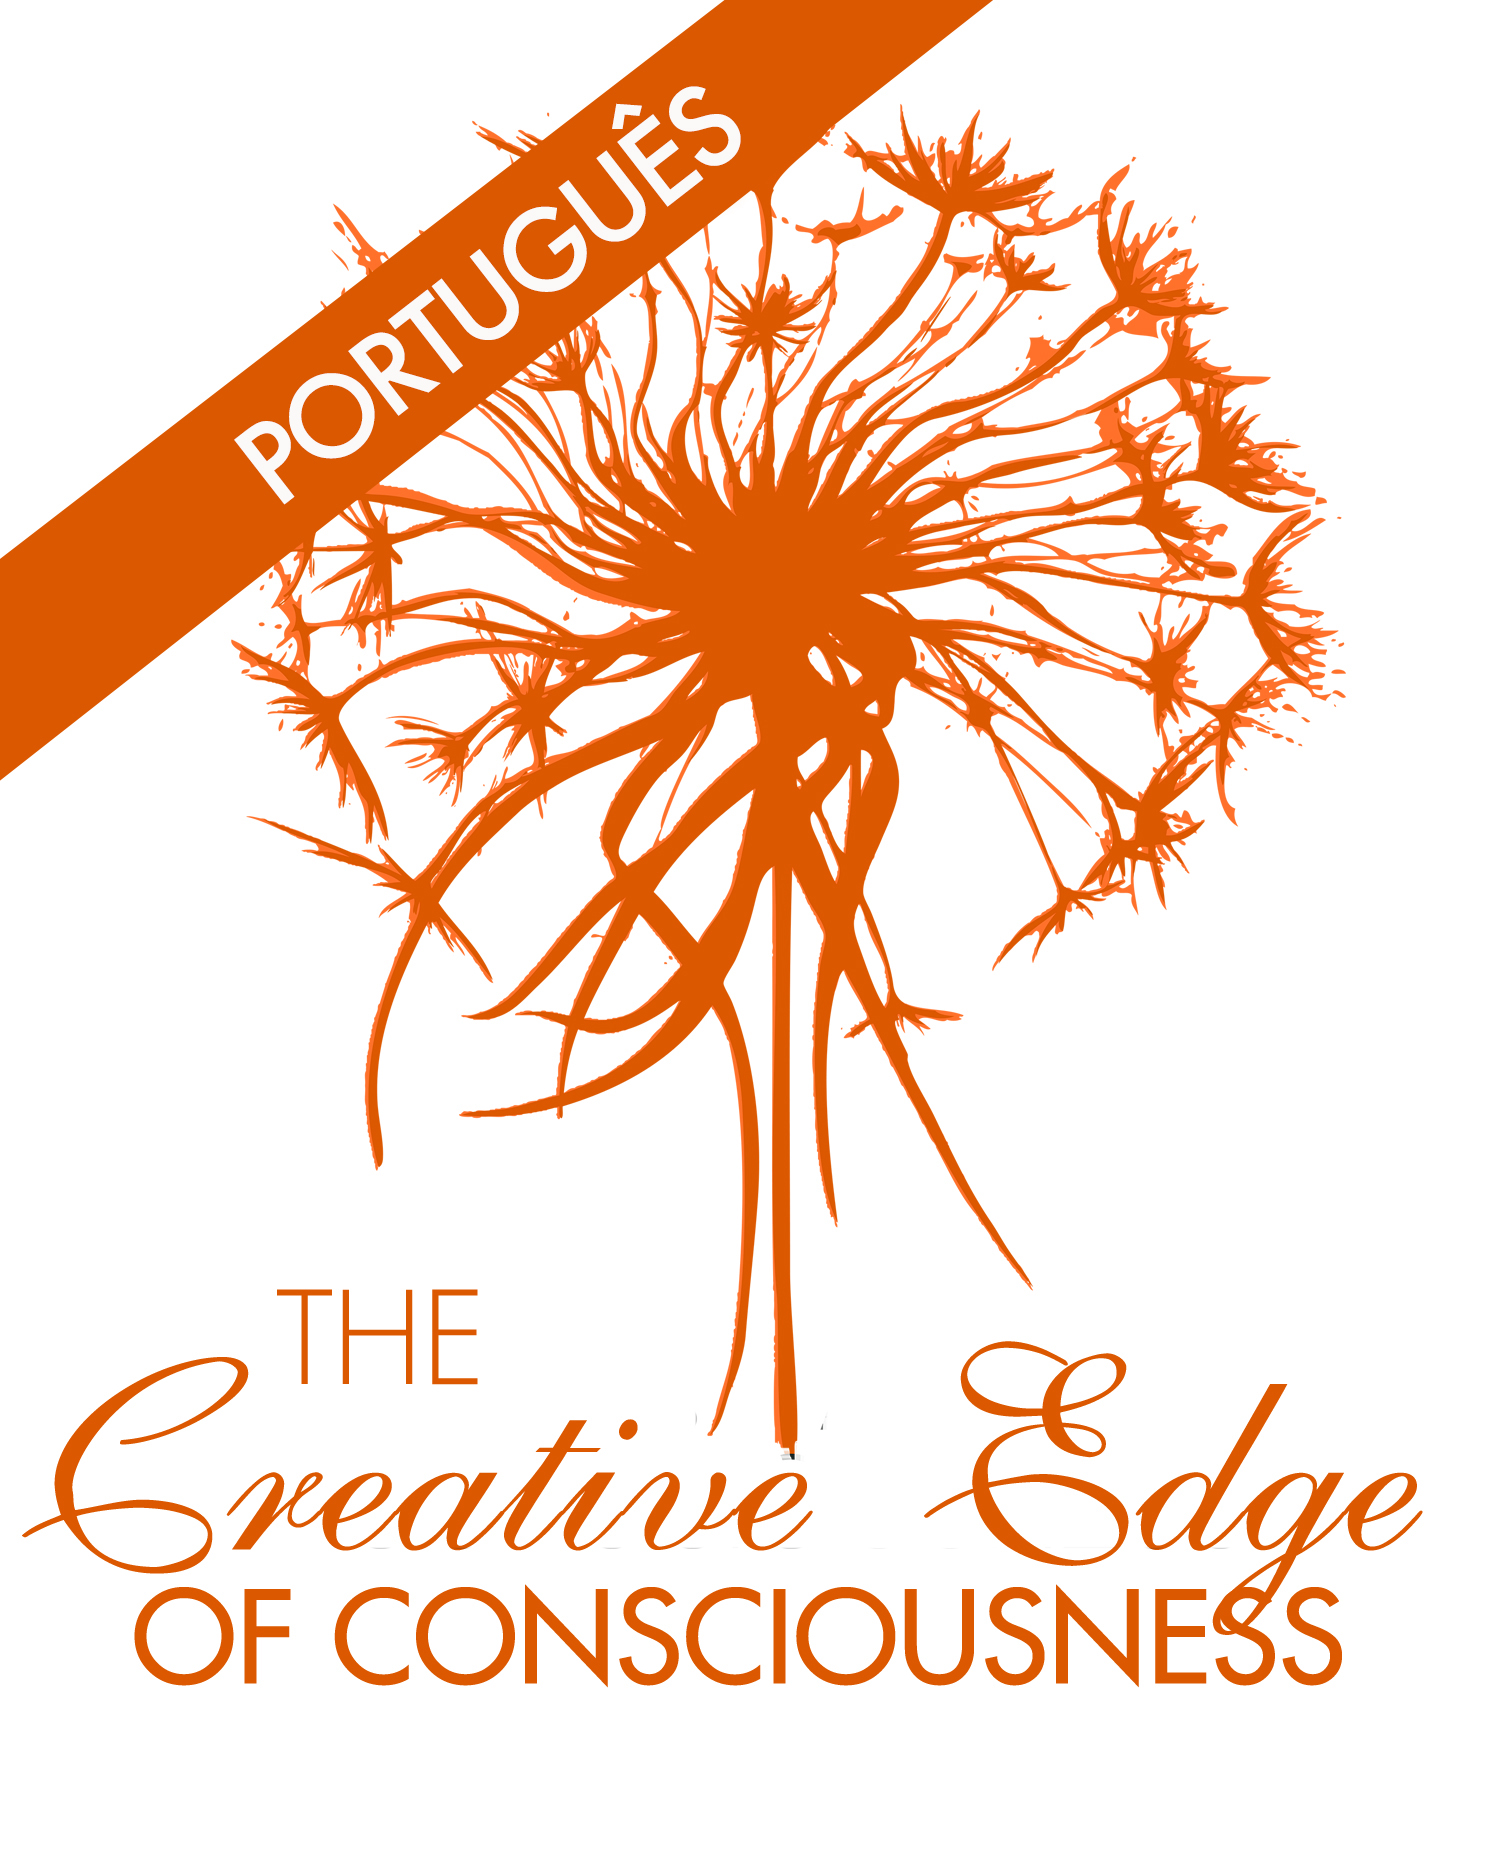 A Ponta Criativa do Clube da Consciencia (Creative Edge of Consciousness - Portuguese)